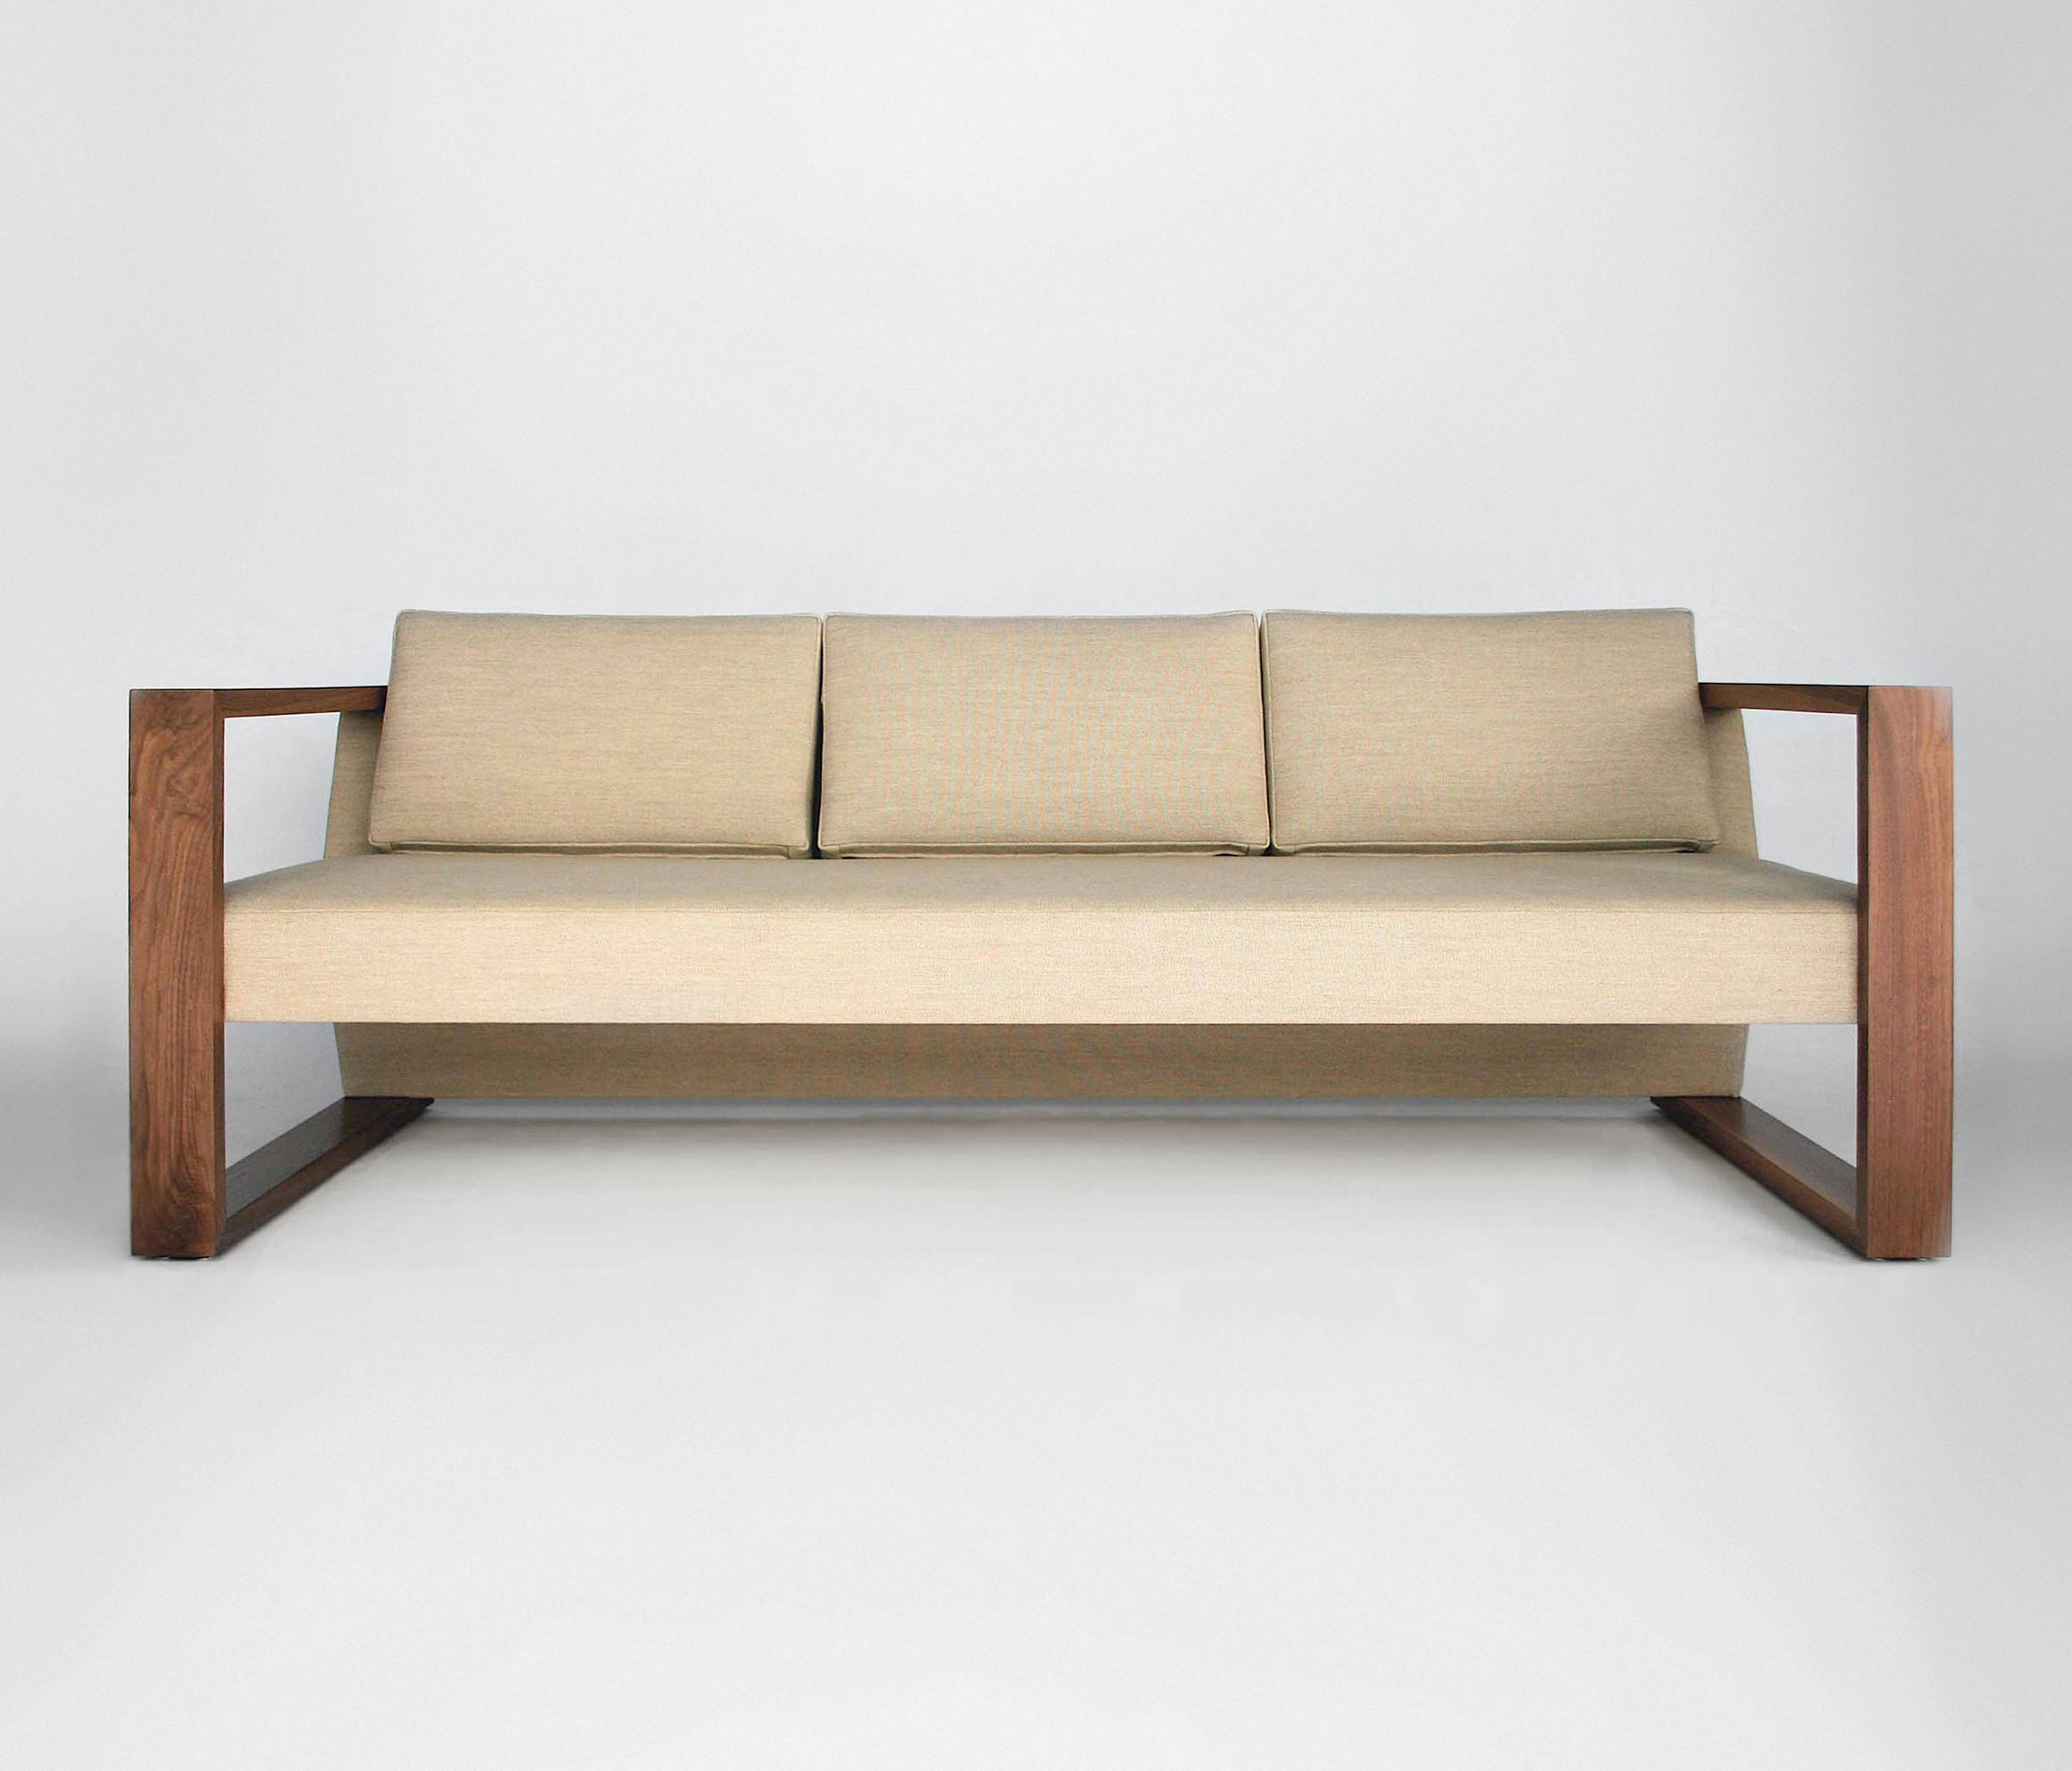 wood frame sofa designs genuine leather sale uk maxell sofas from phase design architonic by